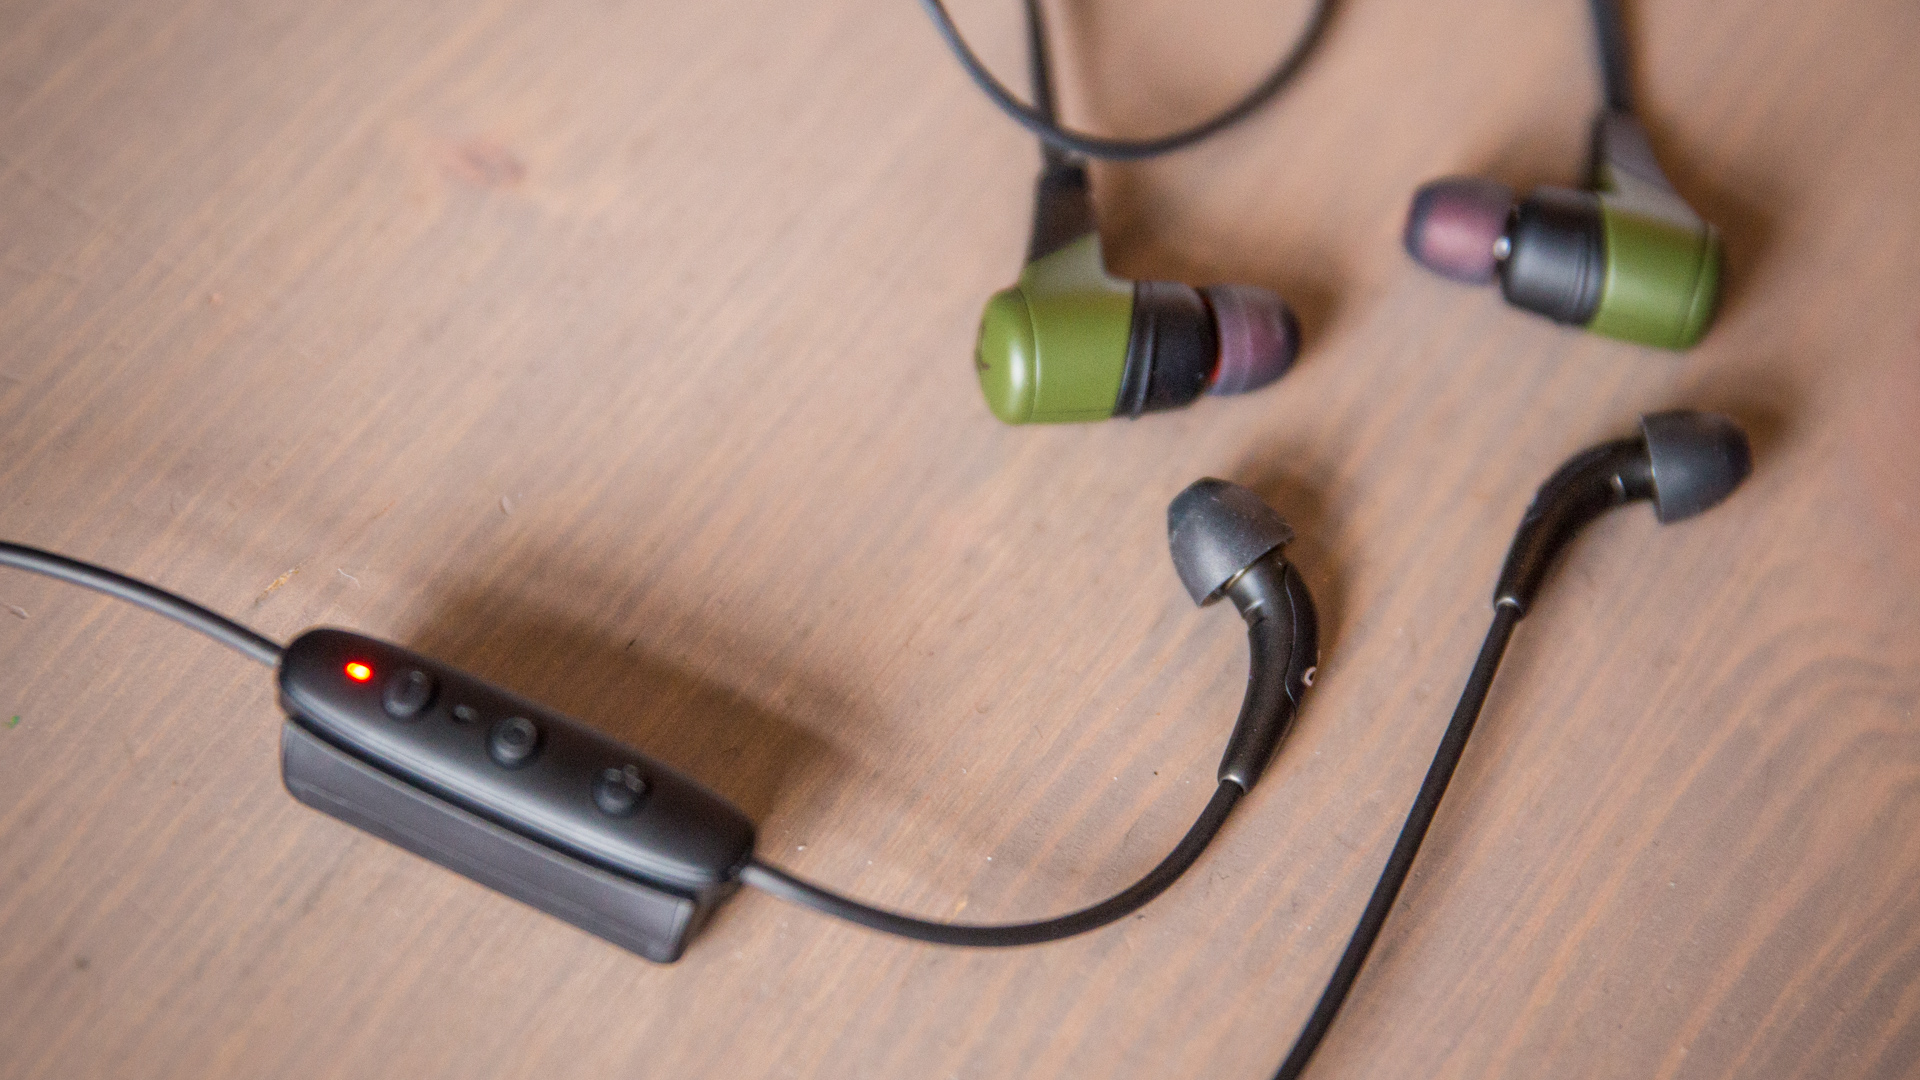 fda32e5b8a7 I can't imagine bluetooth earbuds getting much smaller than this, but the  elephant in the room may be when Jaybird adopts a fully wireless design, ...